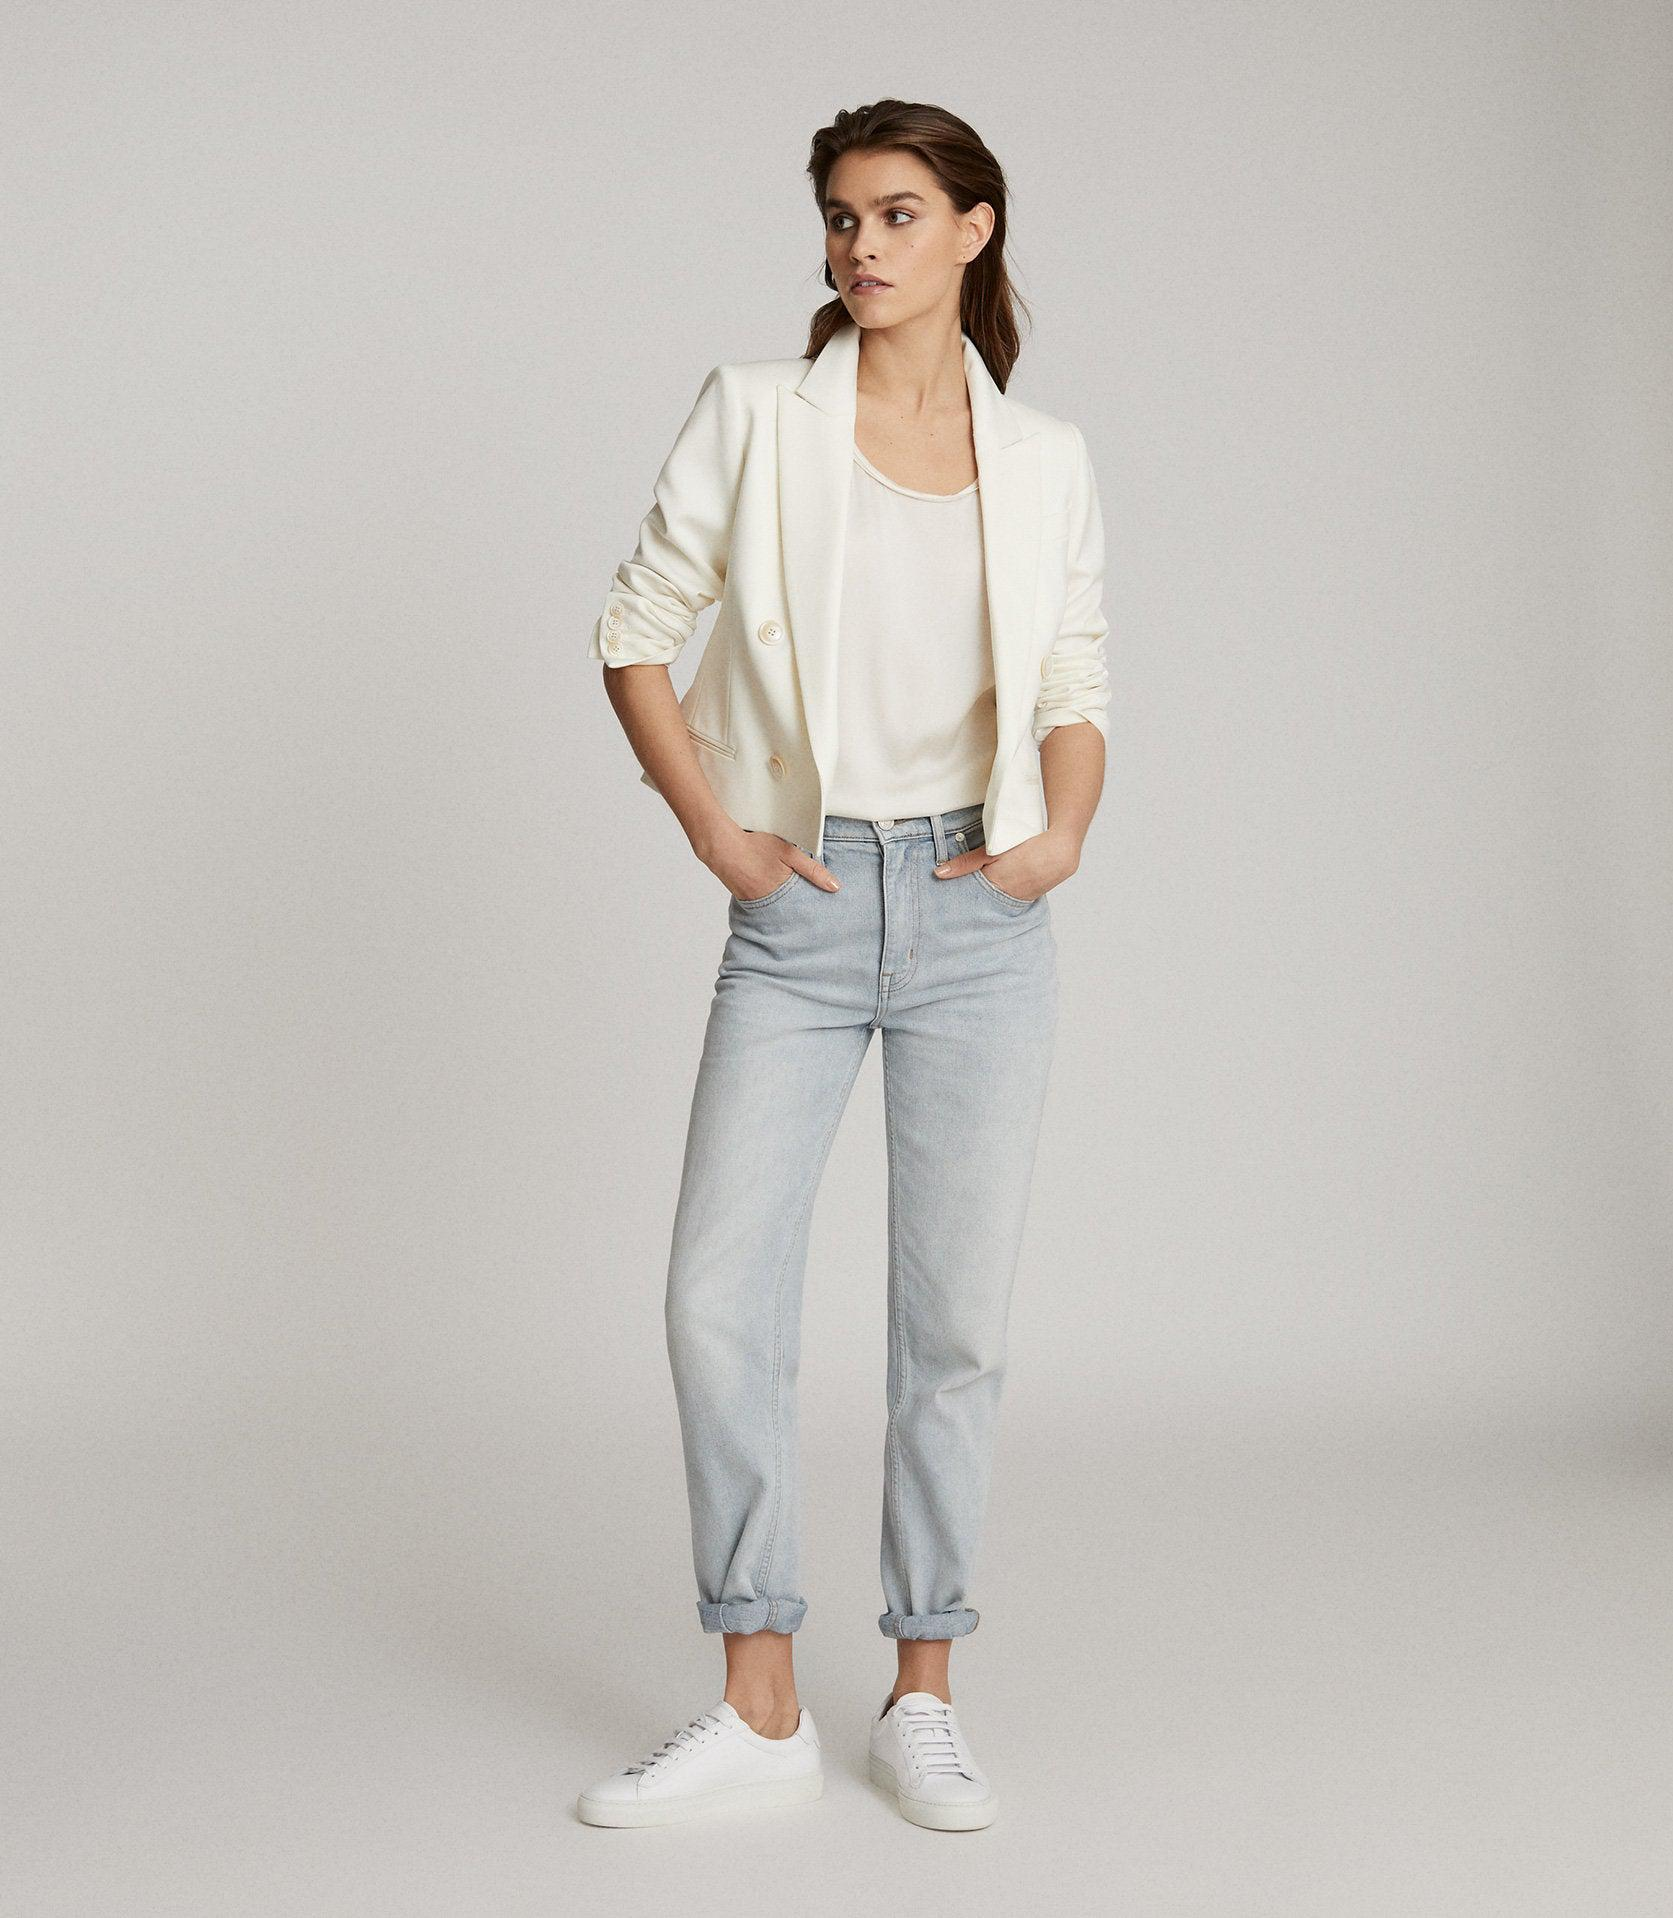 ALEIDA - CROPPED DOUBLE BREASTED BLAZER 0